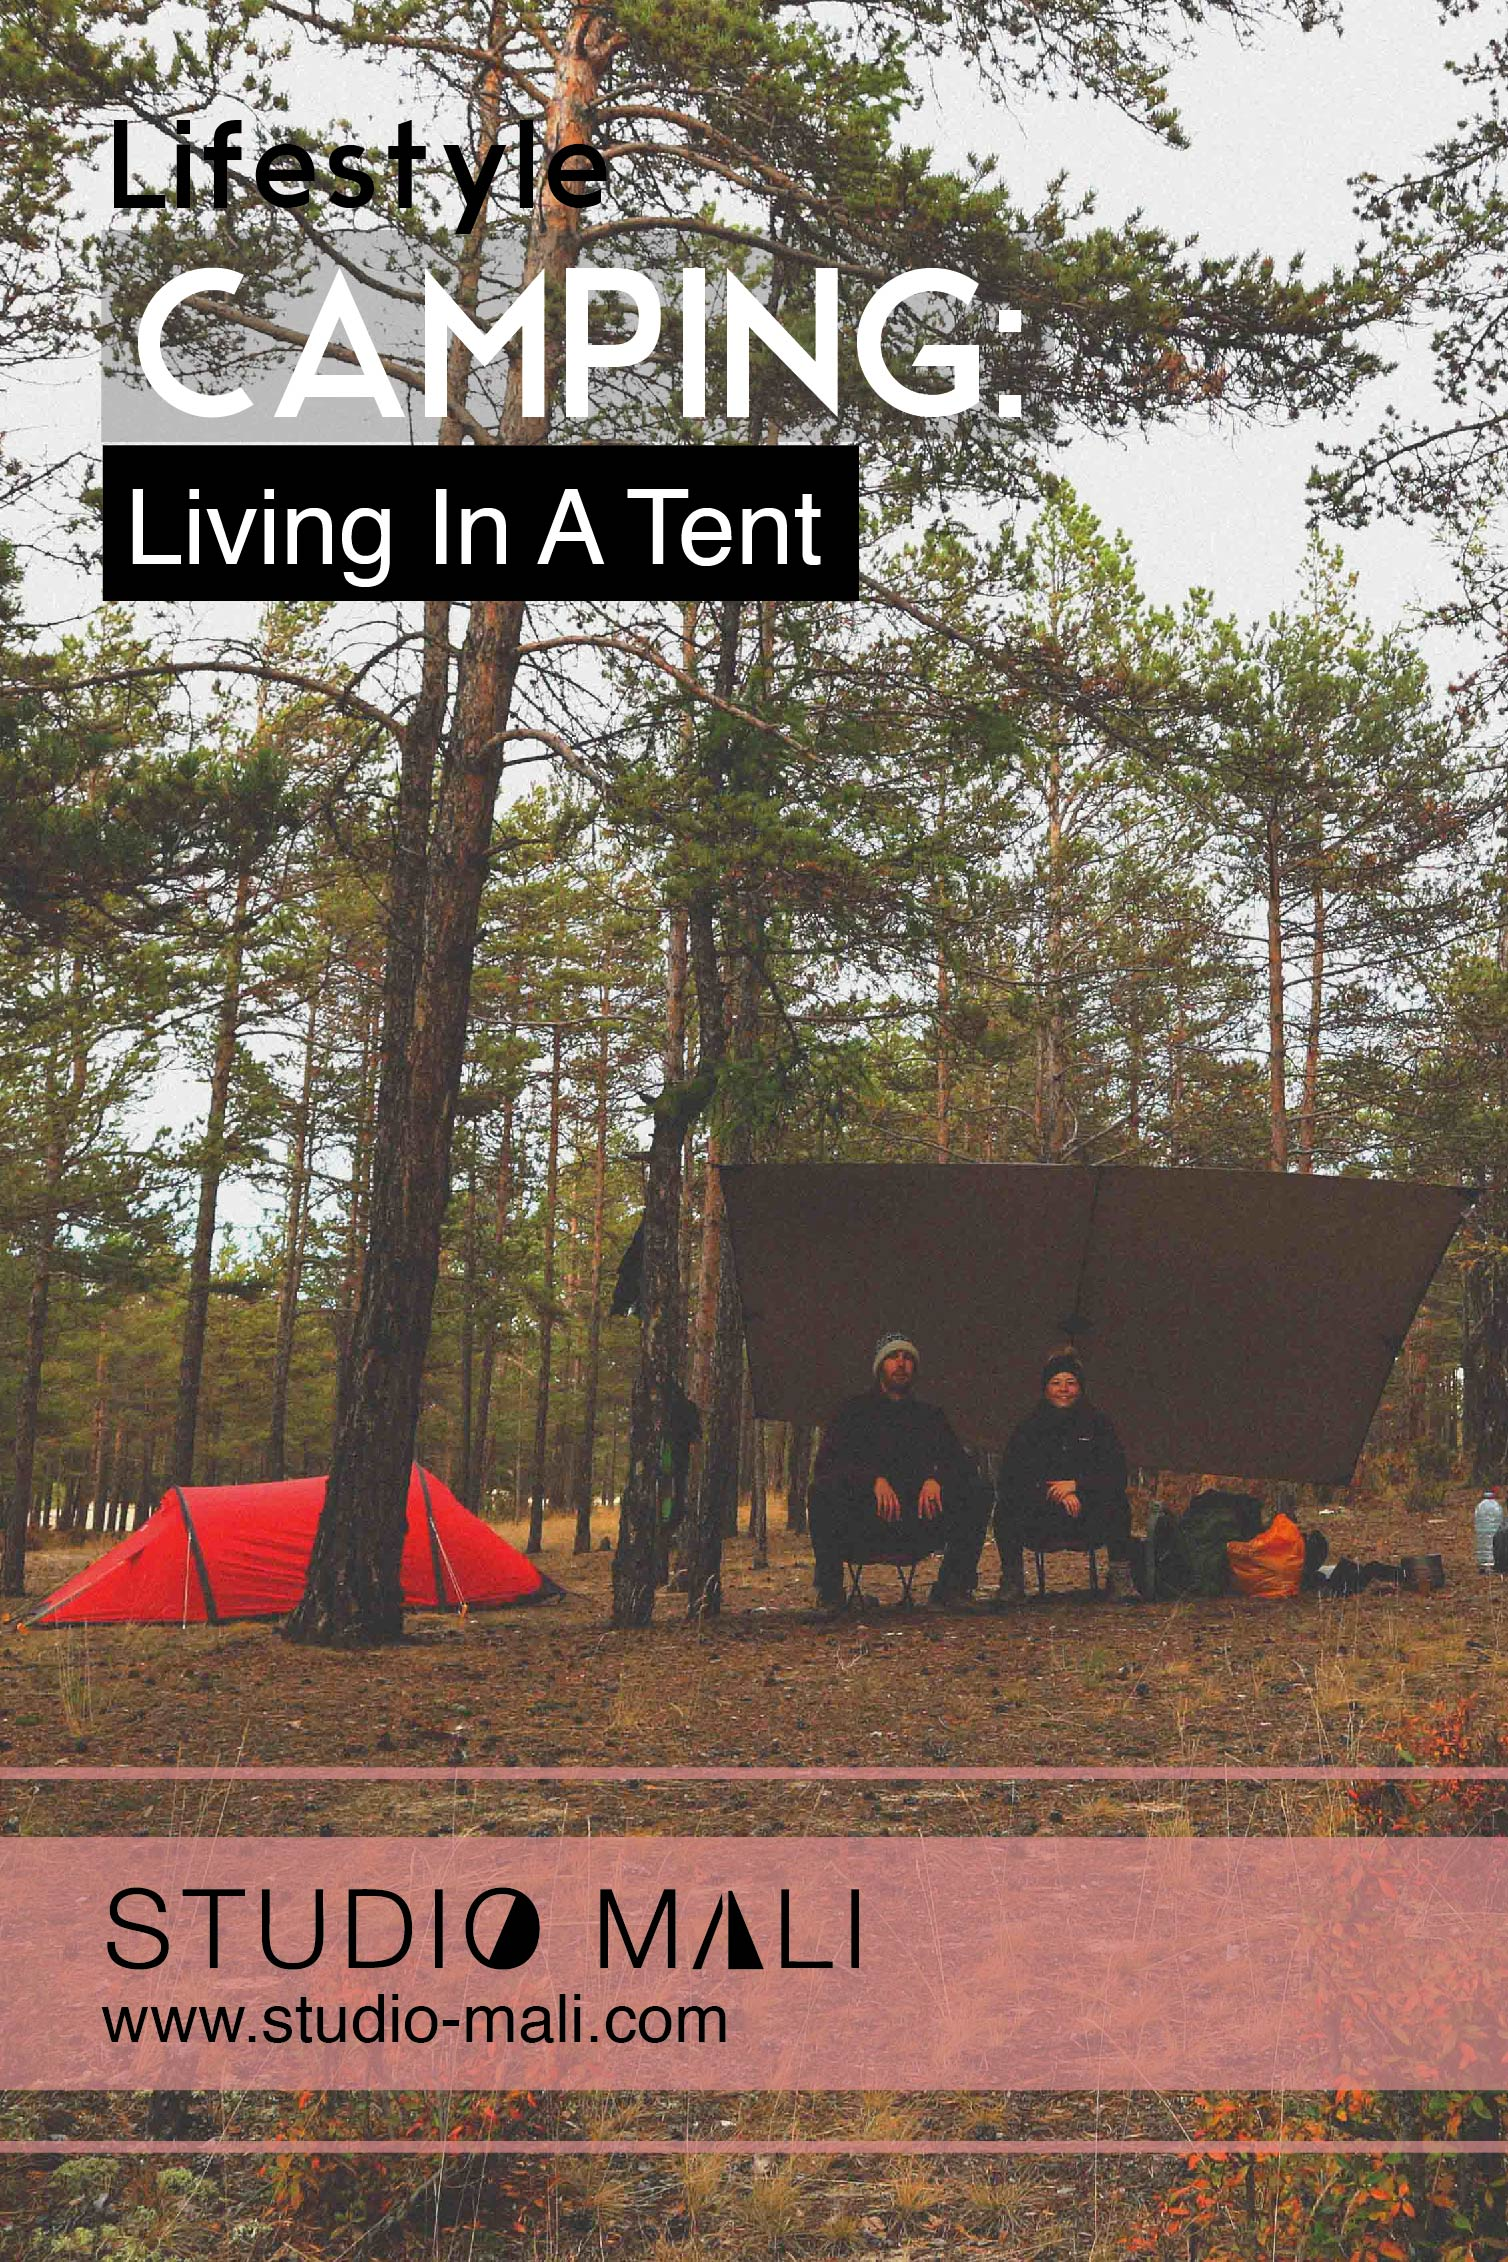 Camping - Living In A Tent, By Studio Mali.jpg